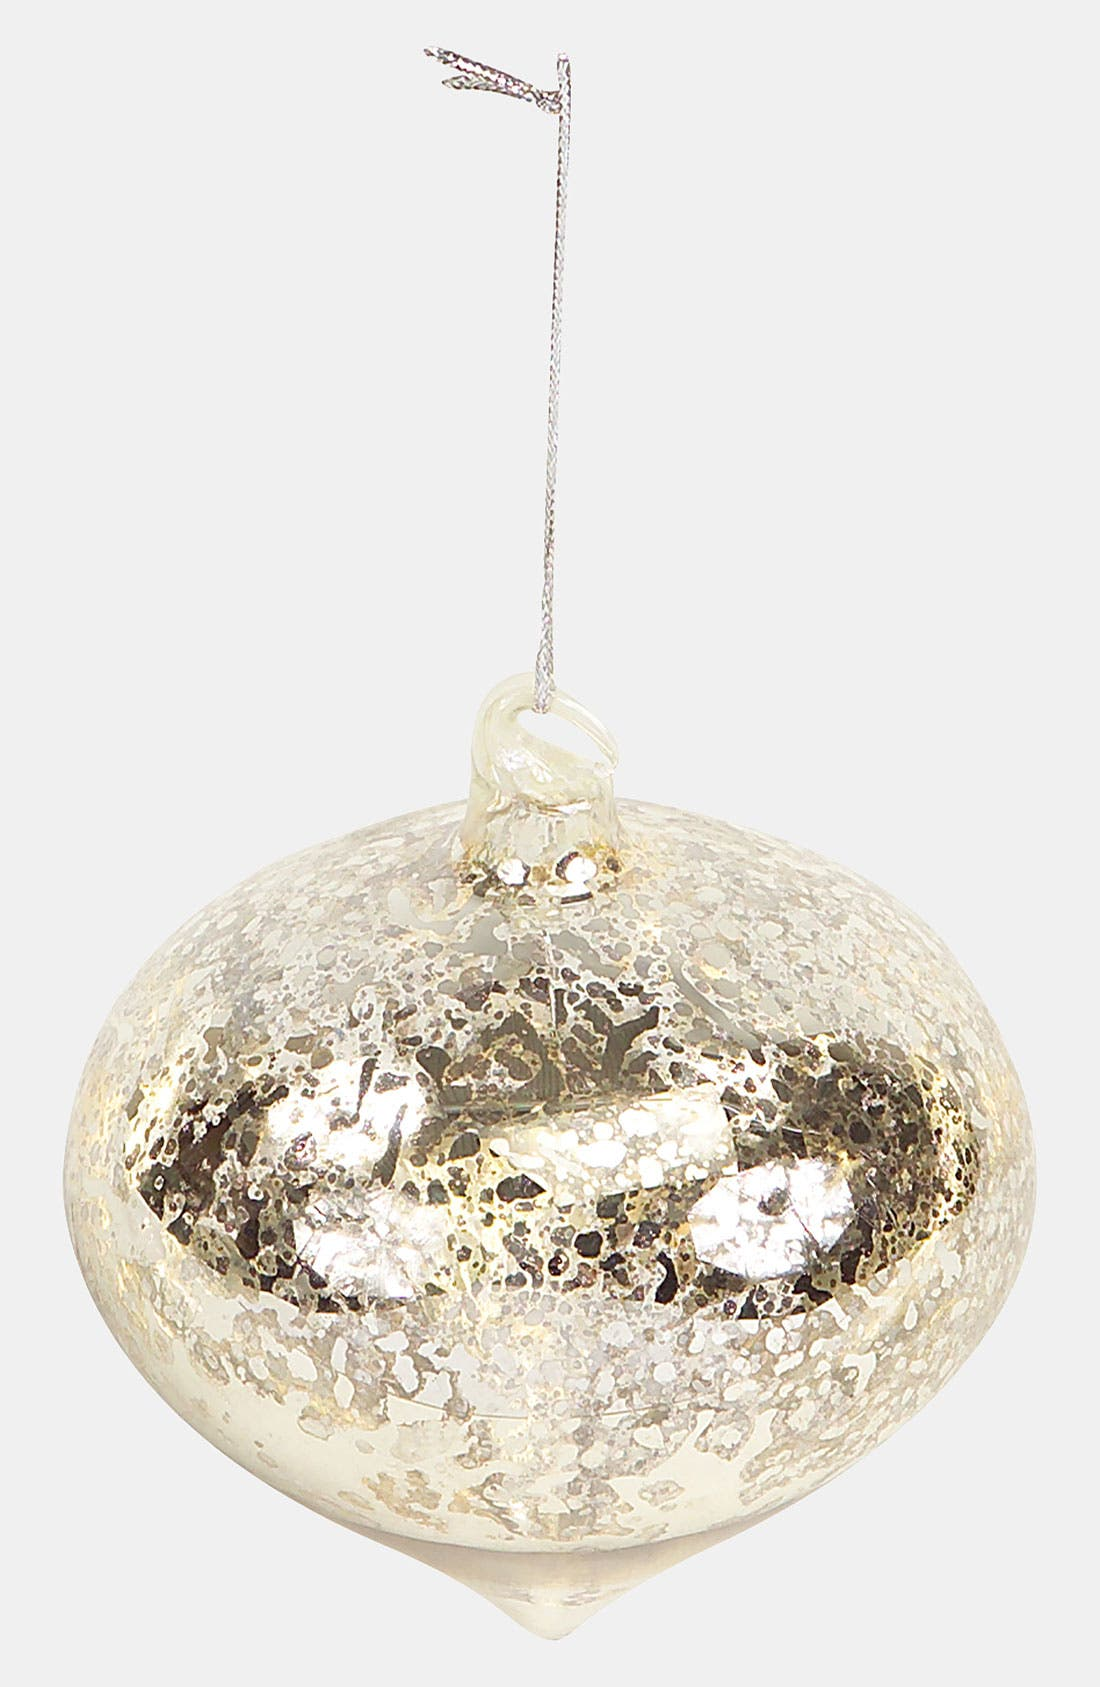 Alternate Image 1 Selected - Melrose Gifts 'Shiny Antiqued Silver Onion' Ornament